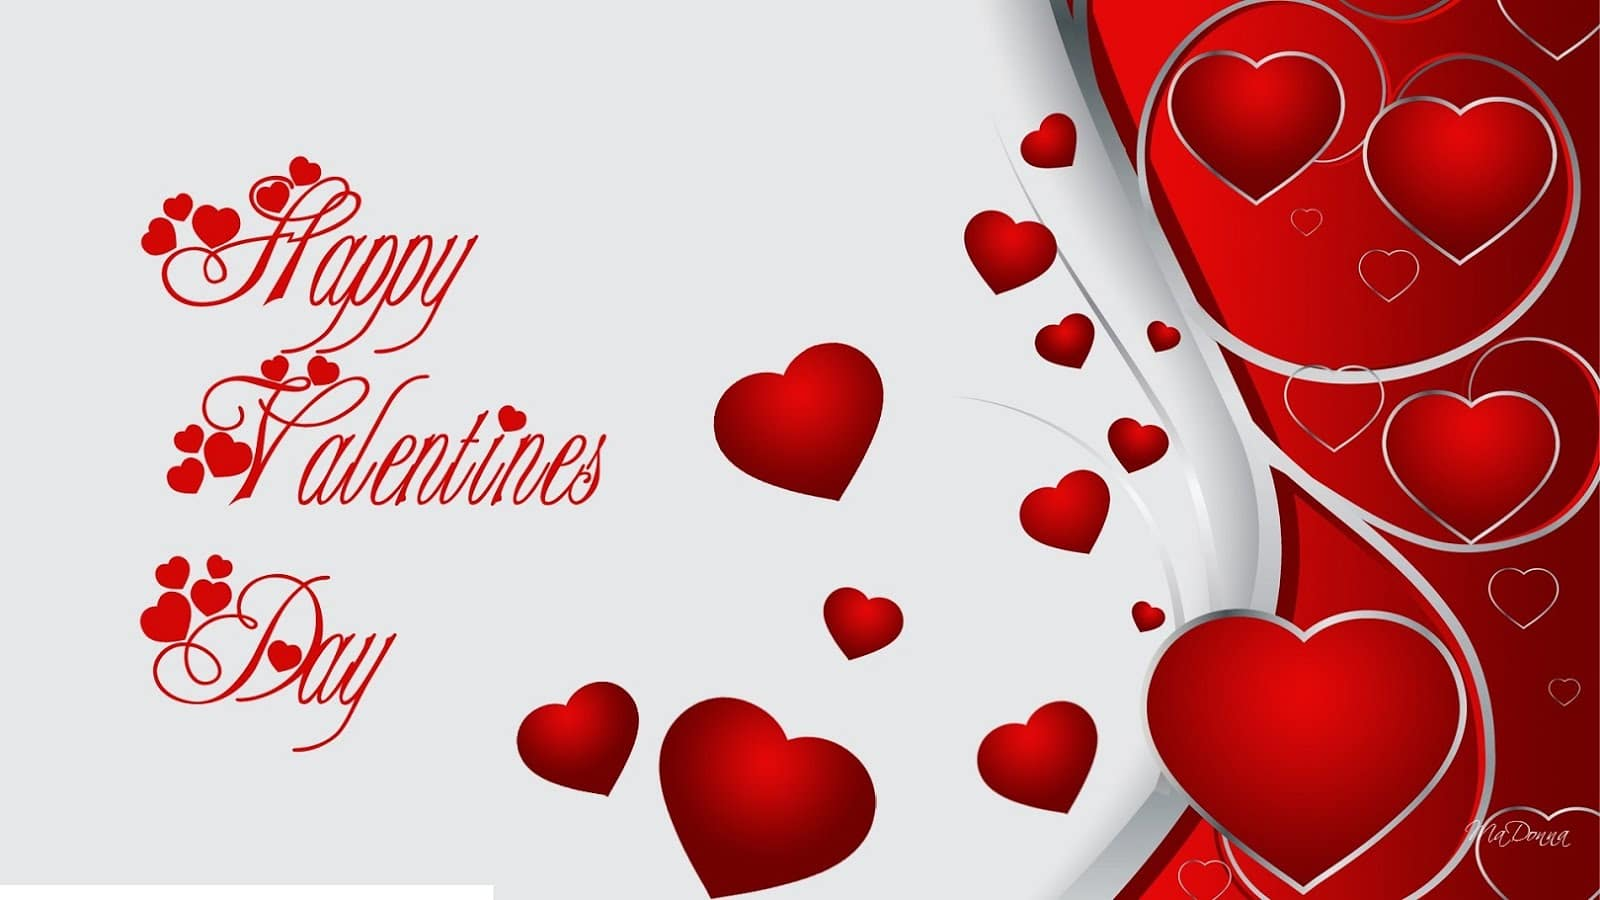 Happy Valentine's Day SayingsHappy Valentine's Day Sayings